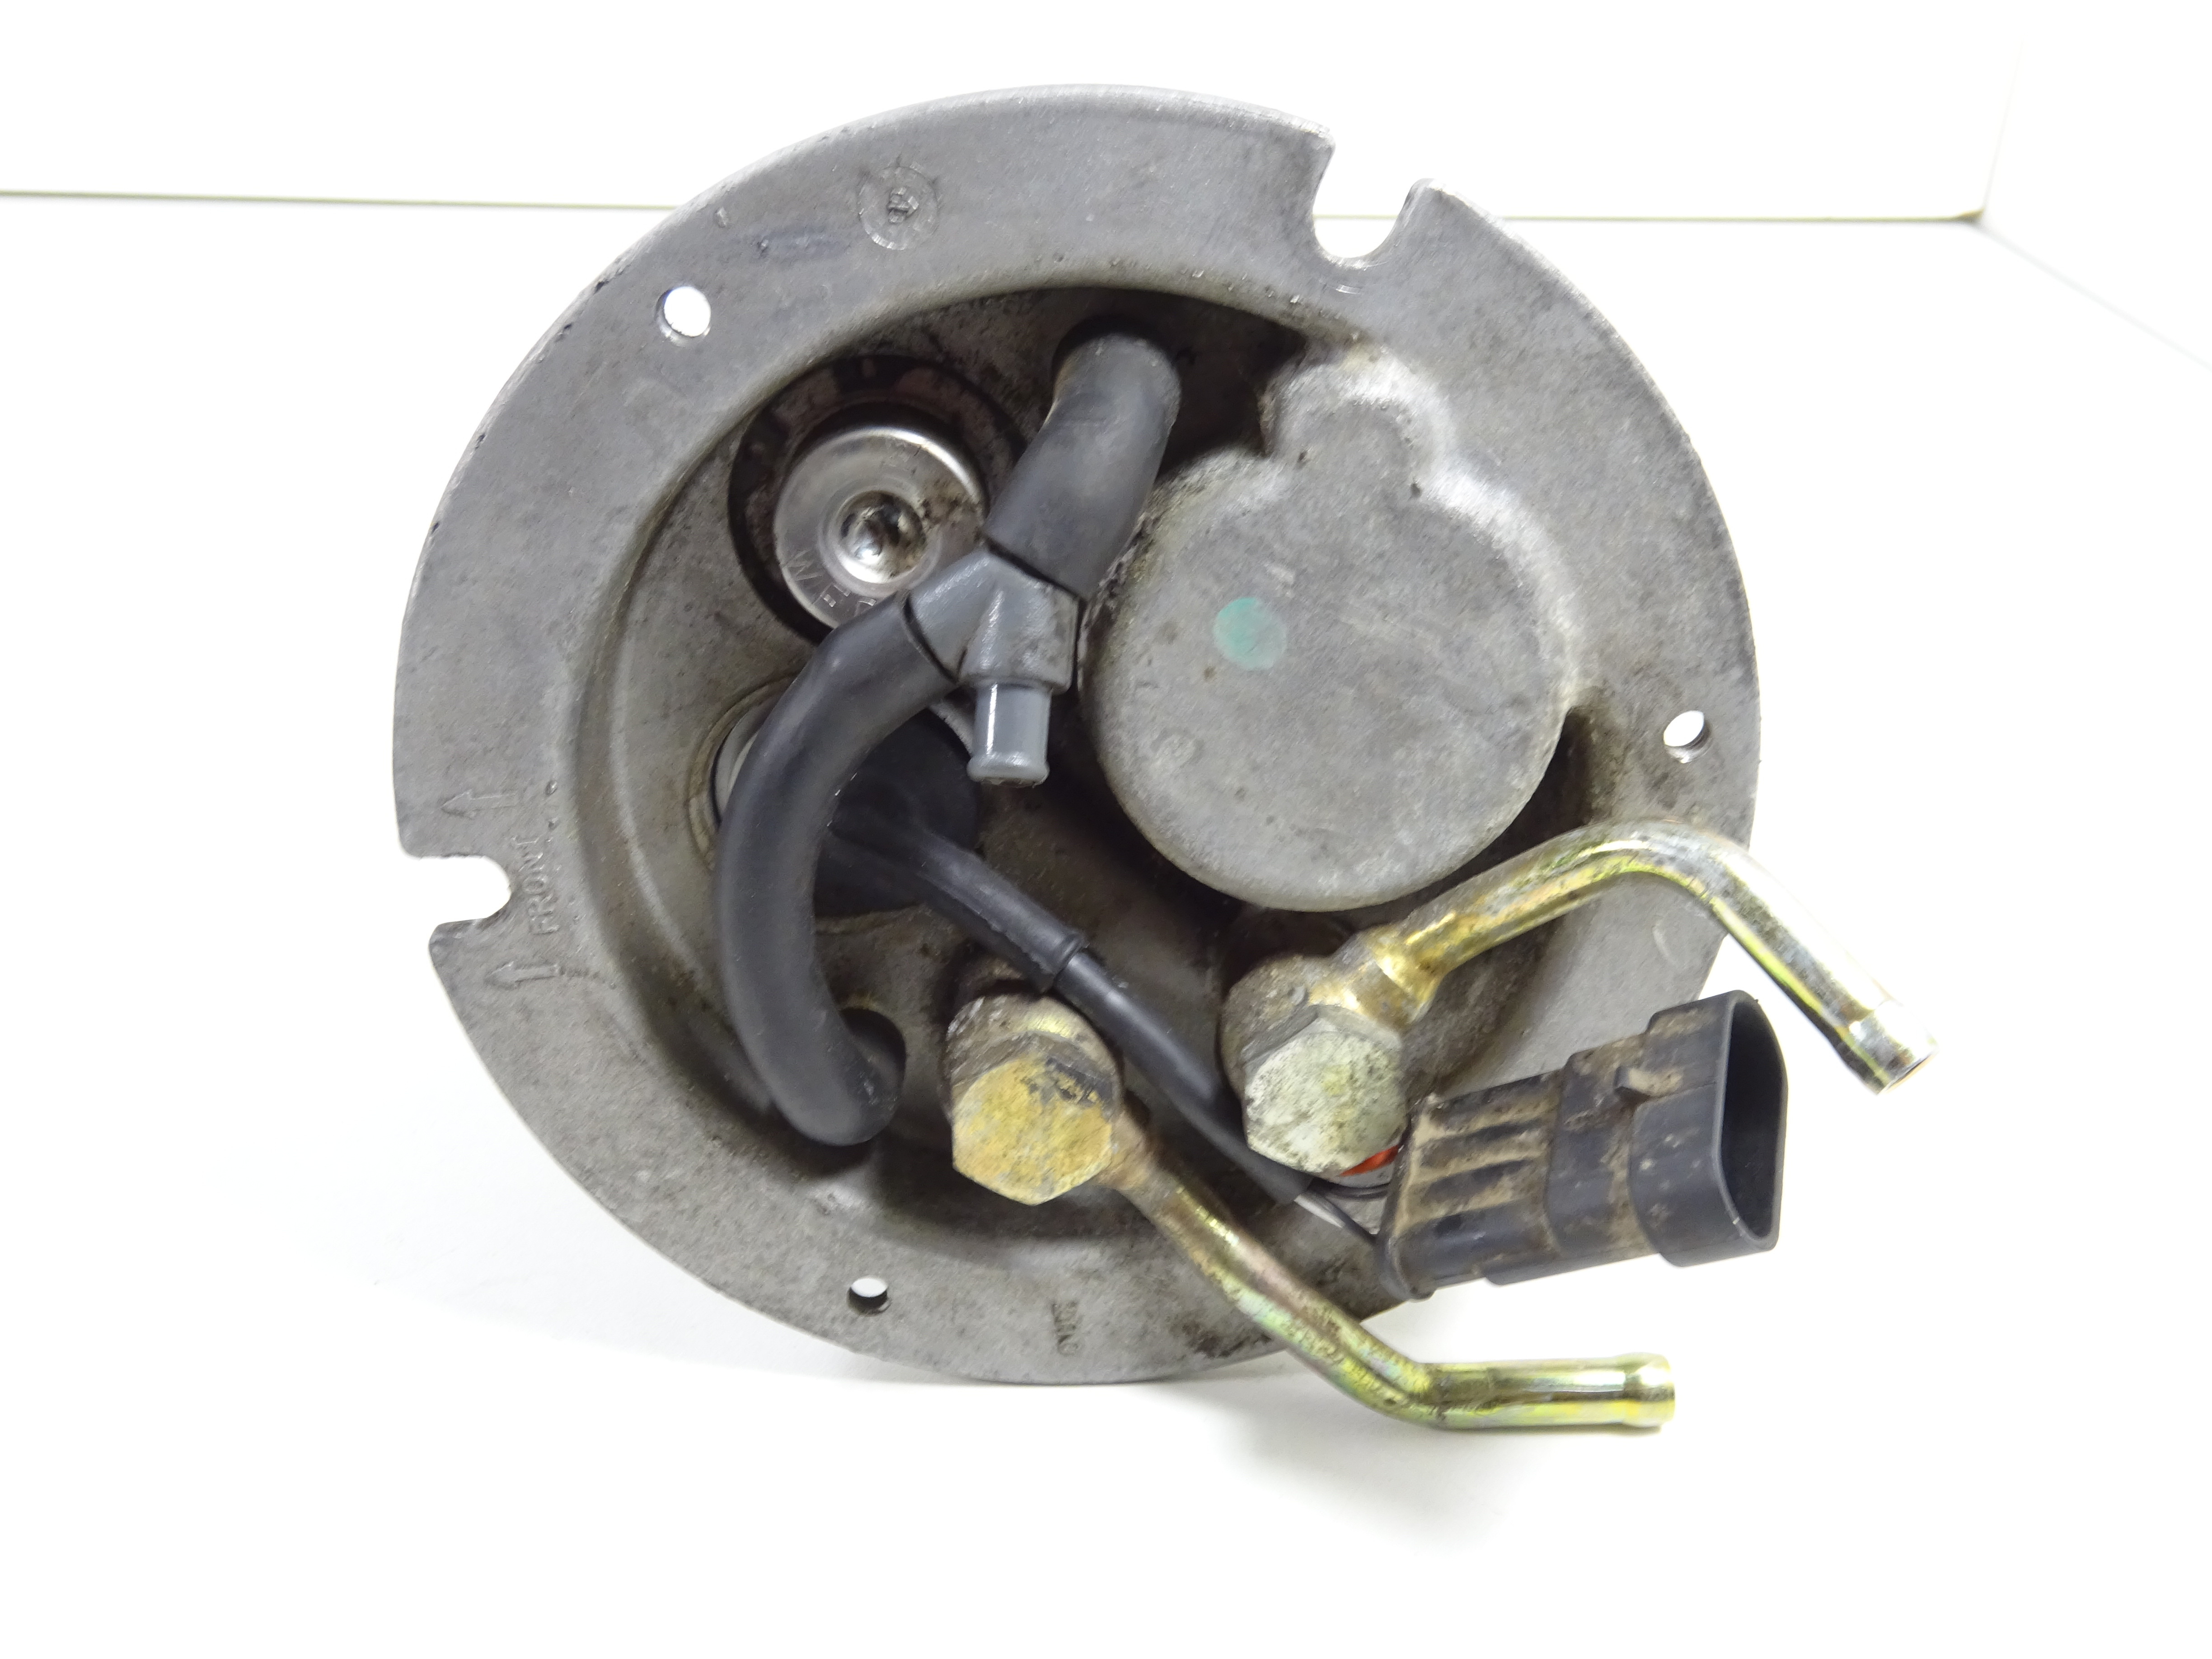 Fuel Pump Ducati St2 1997 2003 201260103 748 Wiring Info Before You Order